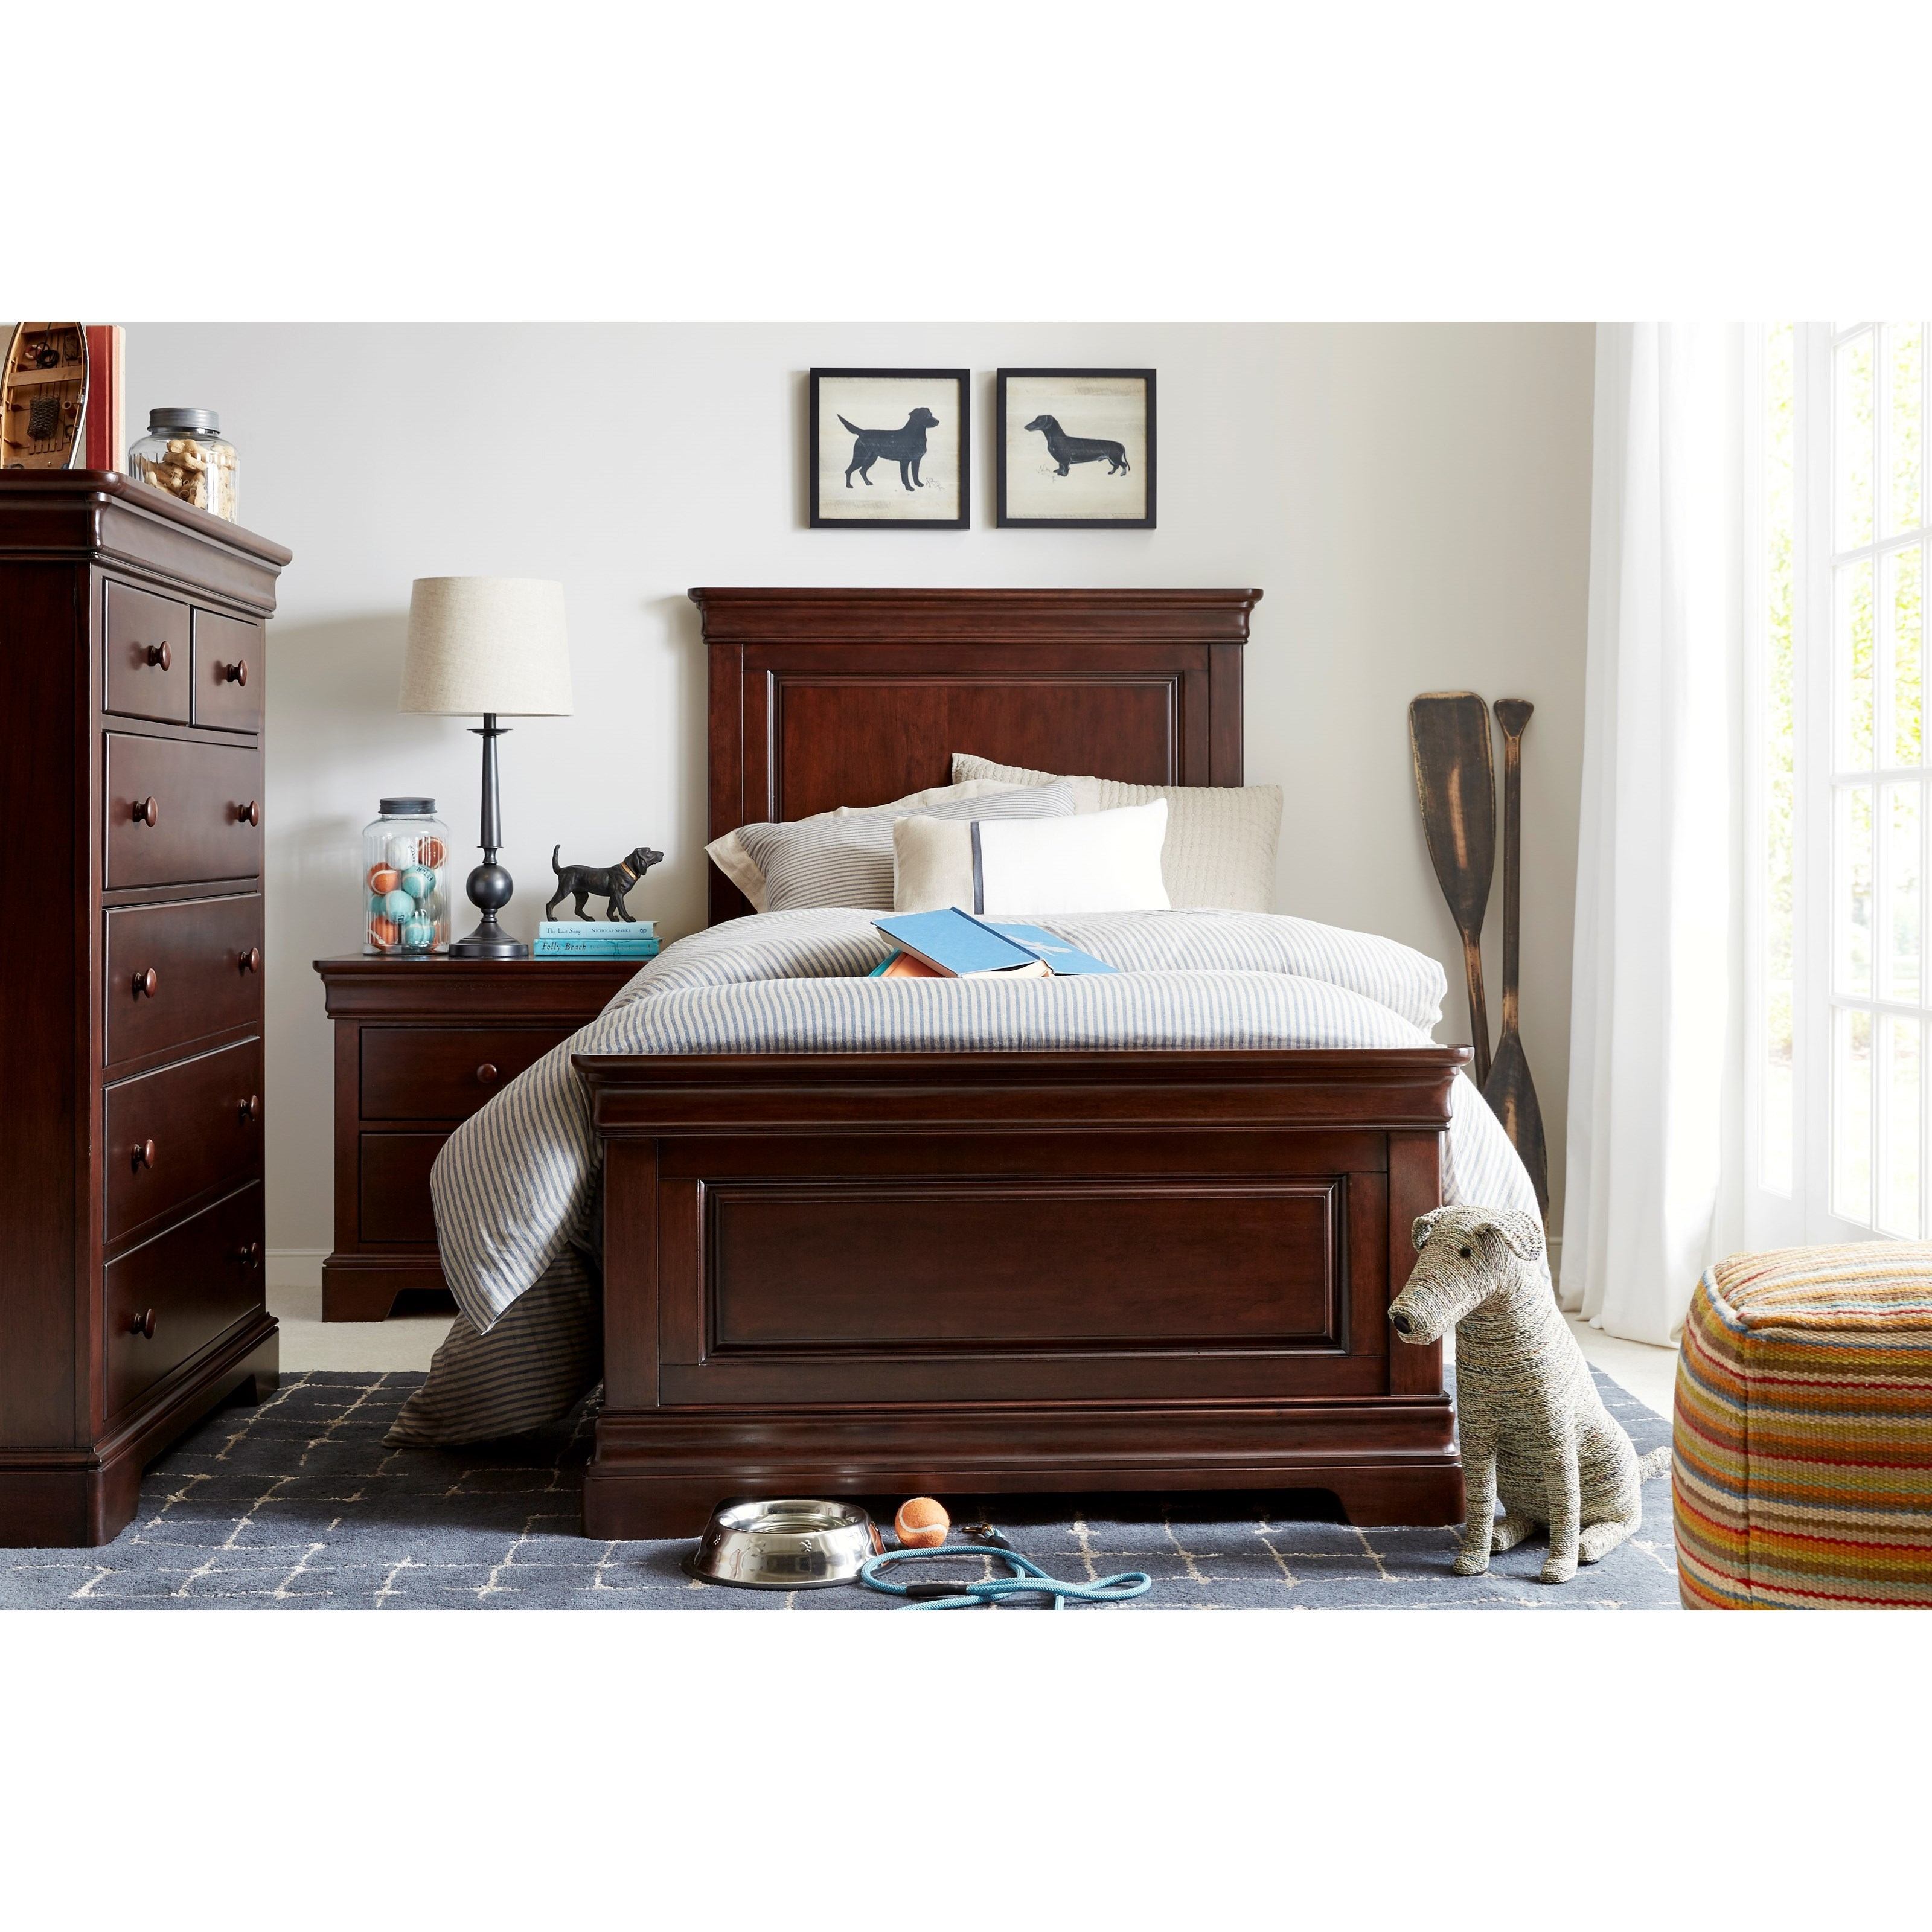 Stone leigh furniture teaberry lane queen bedroom group for Lane bedroom furniture